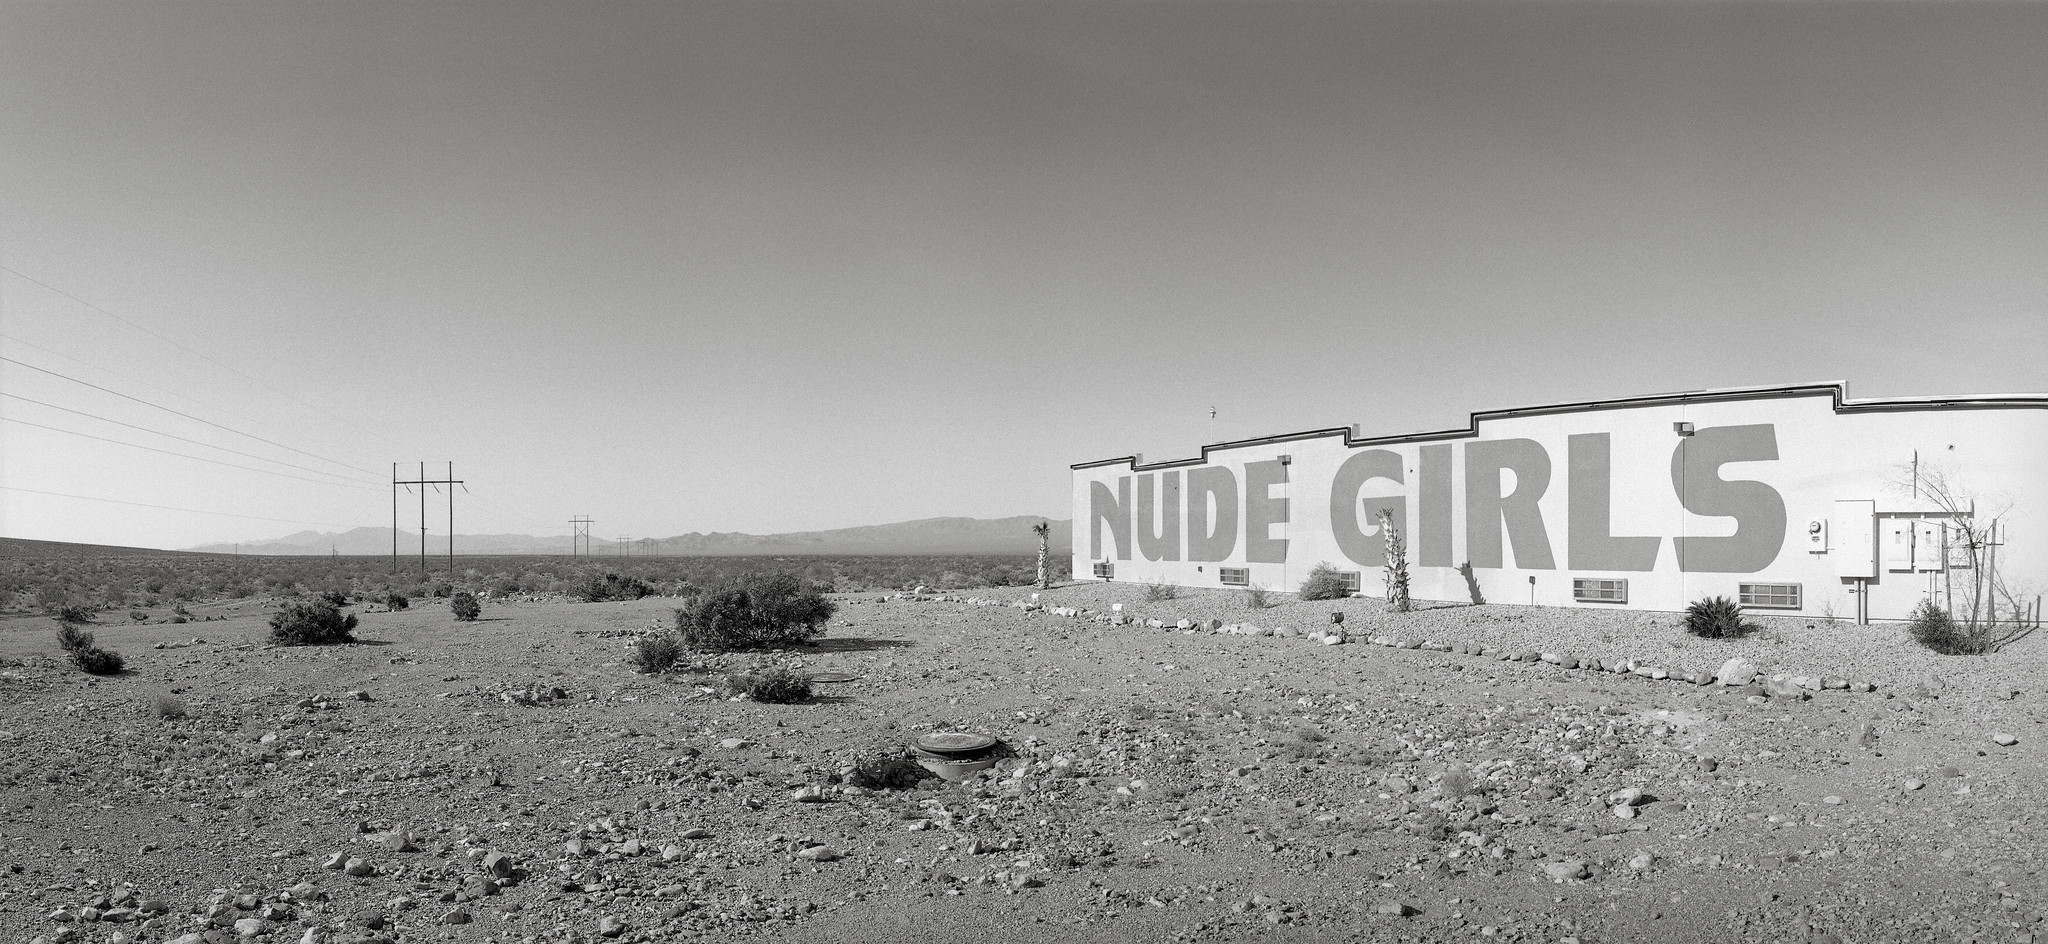 Nude Girls, Nevada | by austin granger